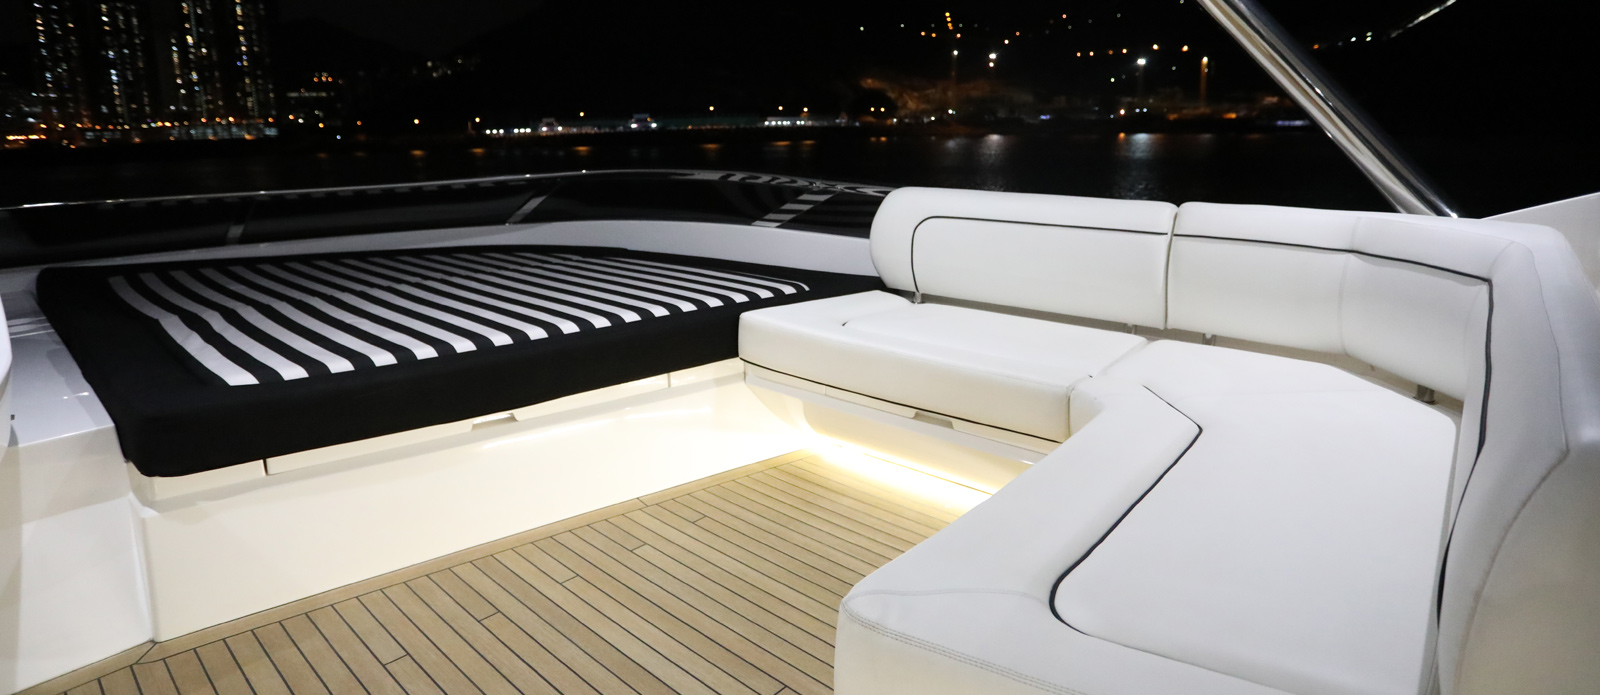 Sunseeker-28-Metre-Yacht-Diablo-Flybridge-Seating-and-Sunbathing